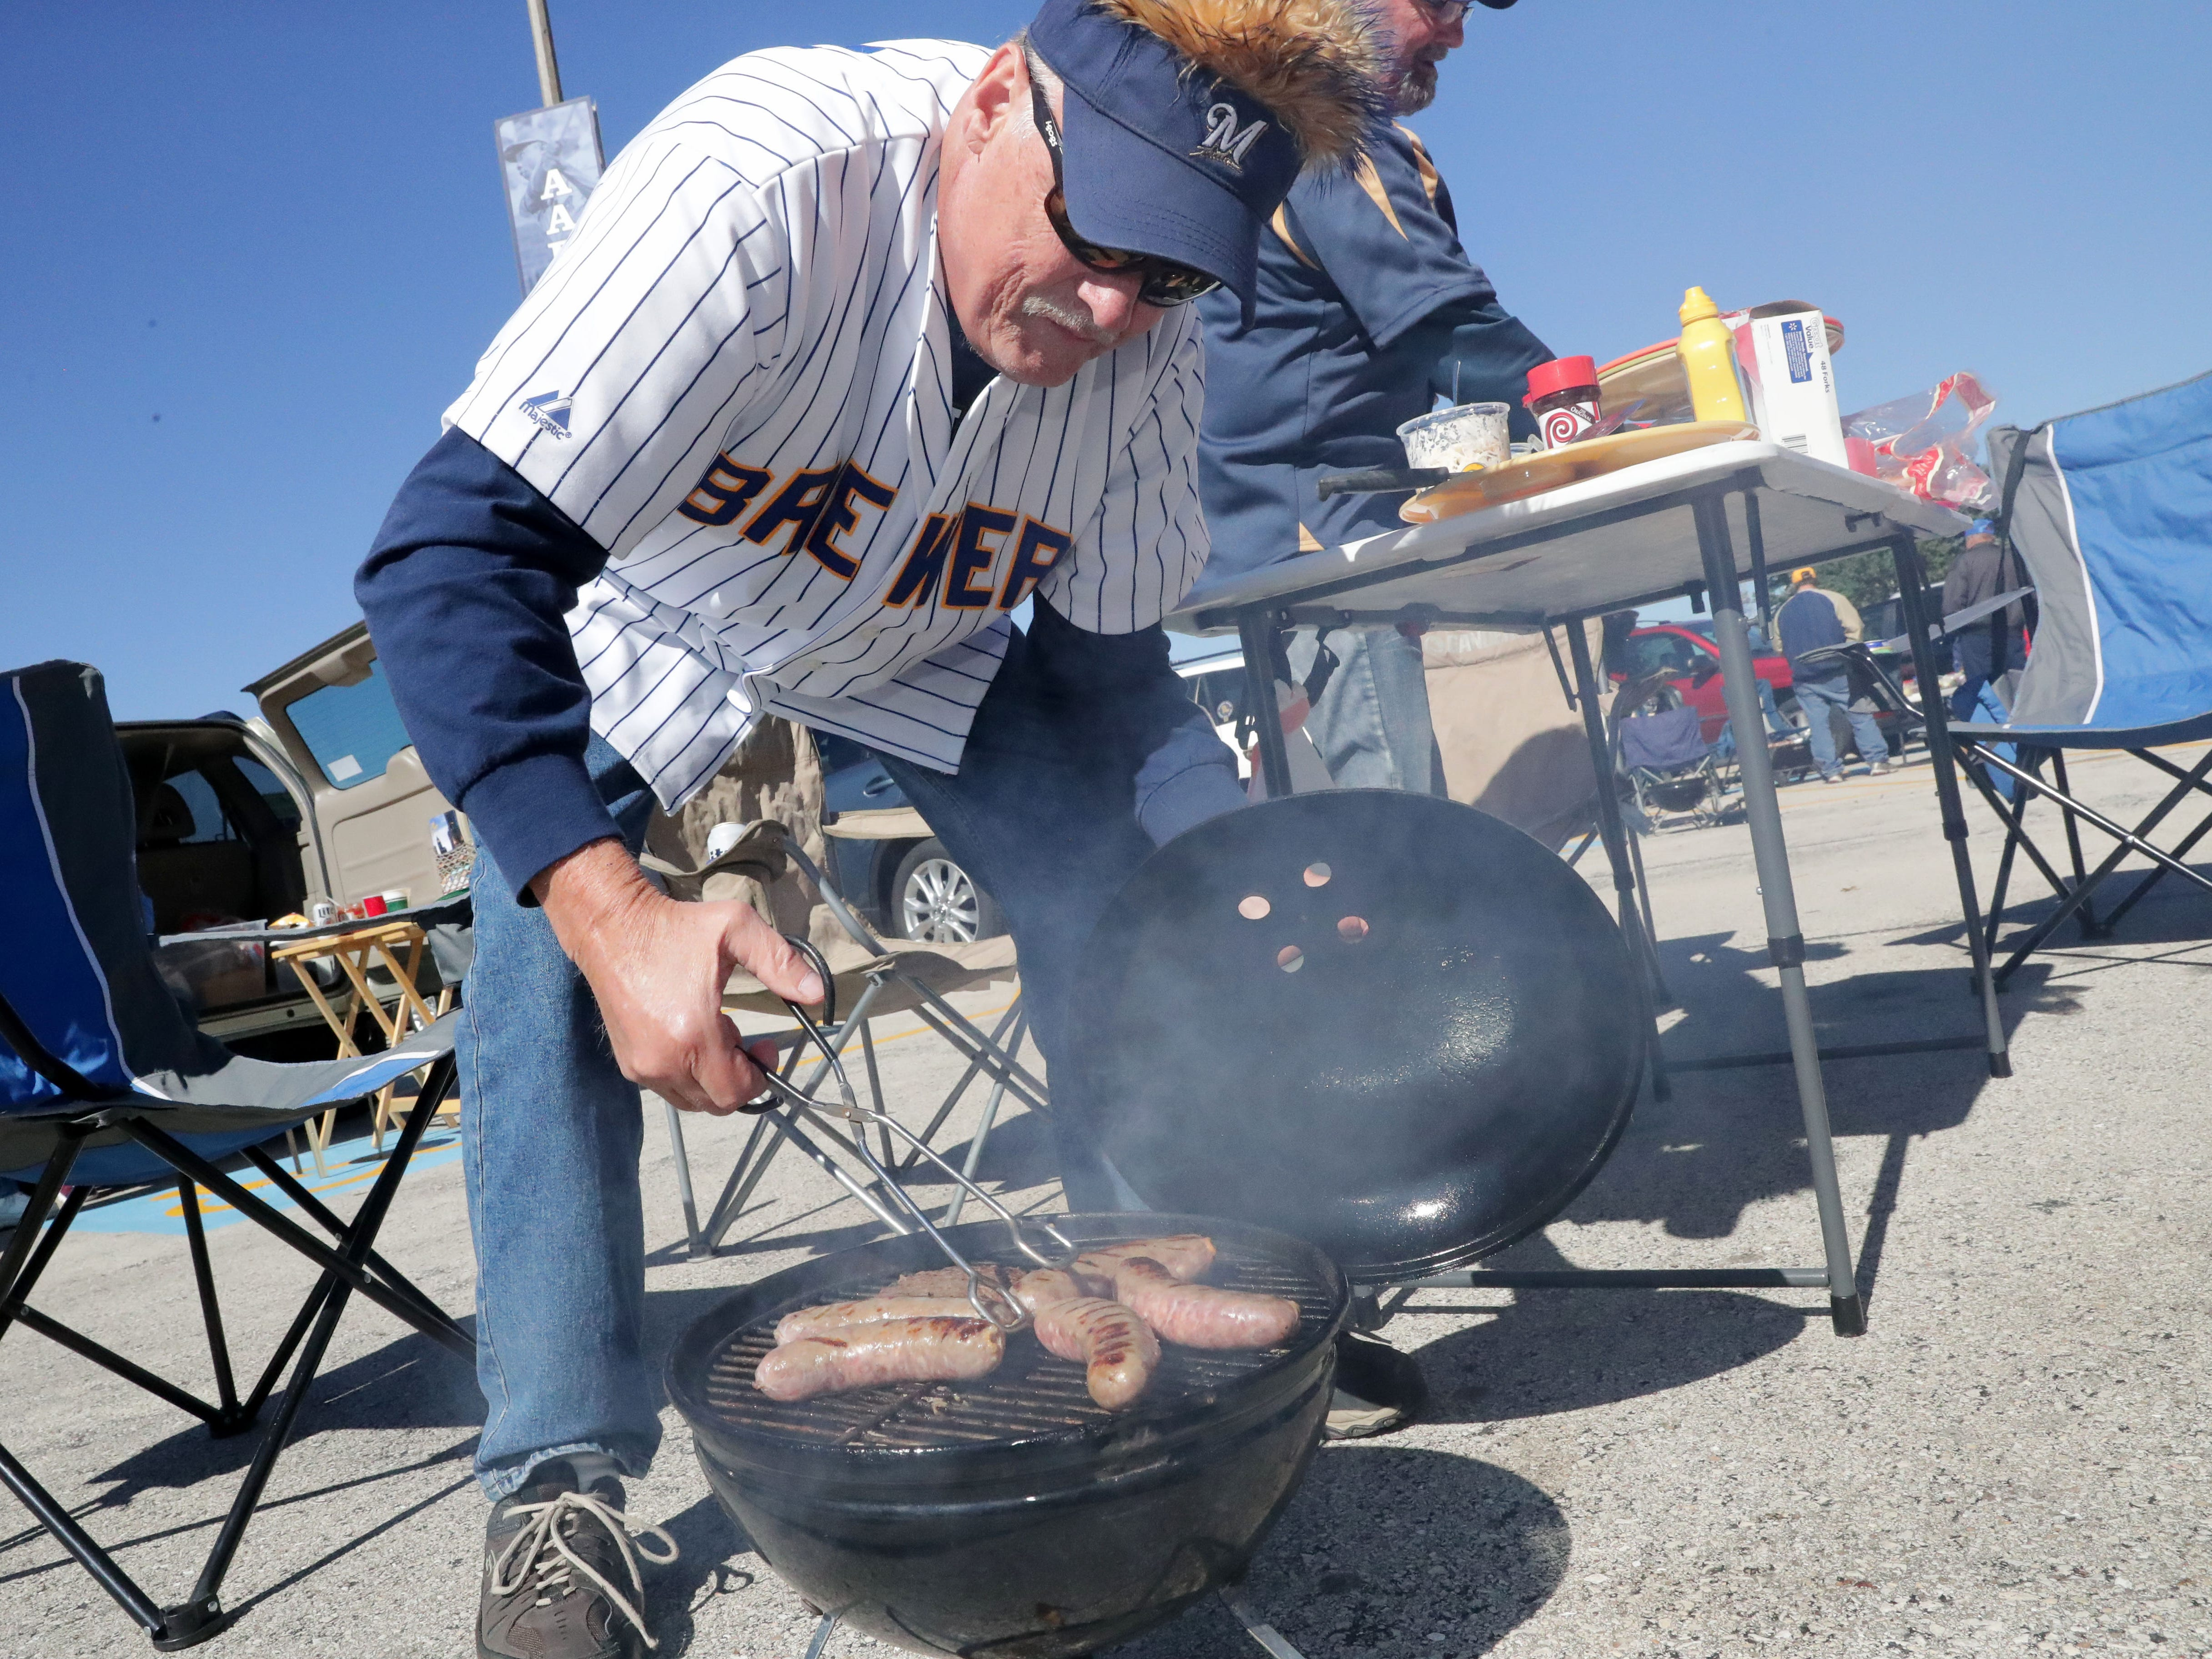 Skeeter Fehly of Fort Atkinson grills brats before the Milwaukee Brewers National League Divisional Series game against the Colorado Rockies.